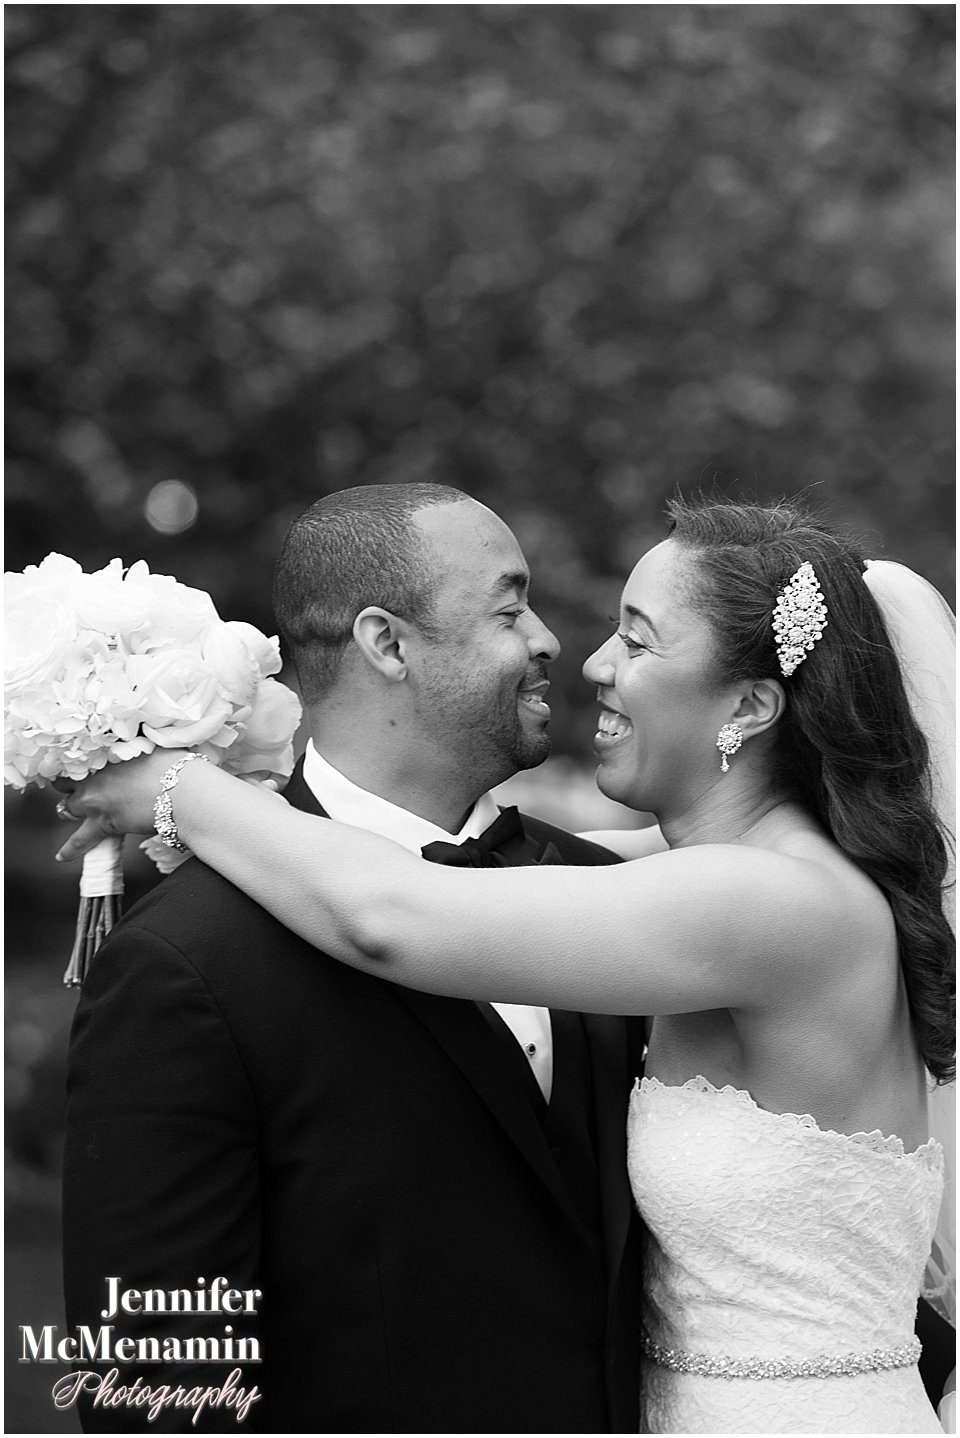 057-Peabody-Library-Wedding_WilsonPatterson_02258bw-0466_Jennifer-McMenamin-Photography